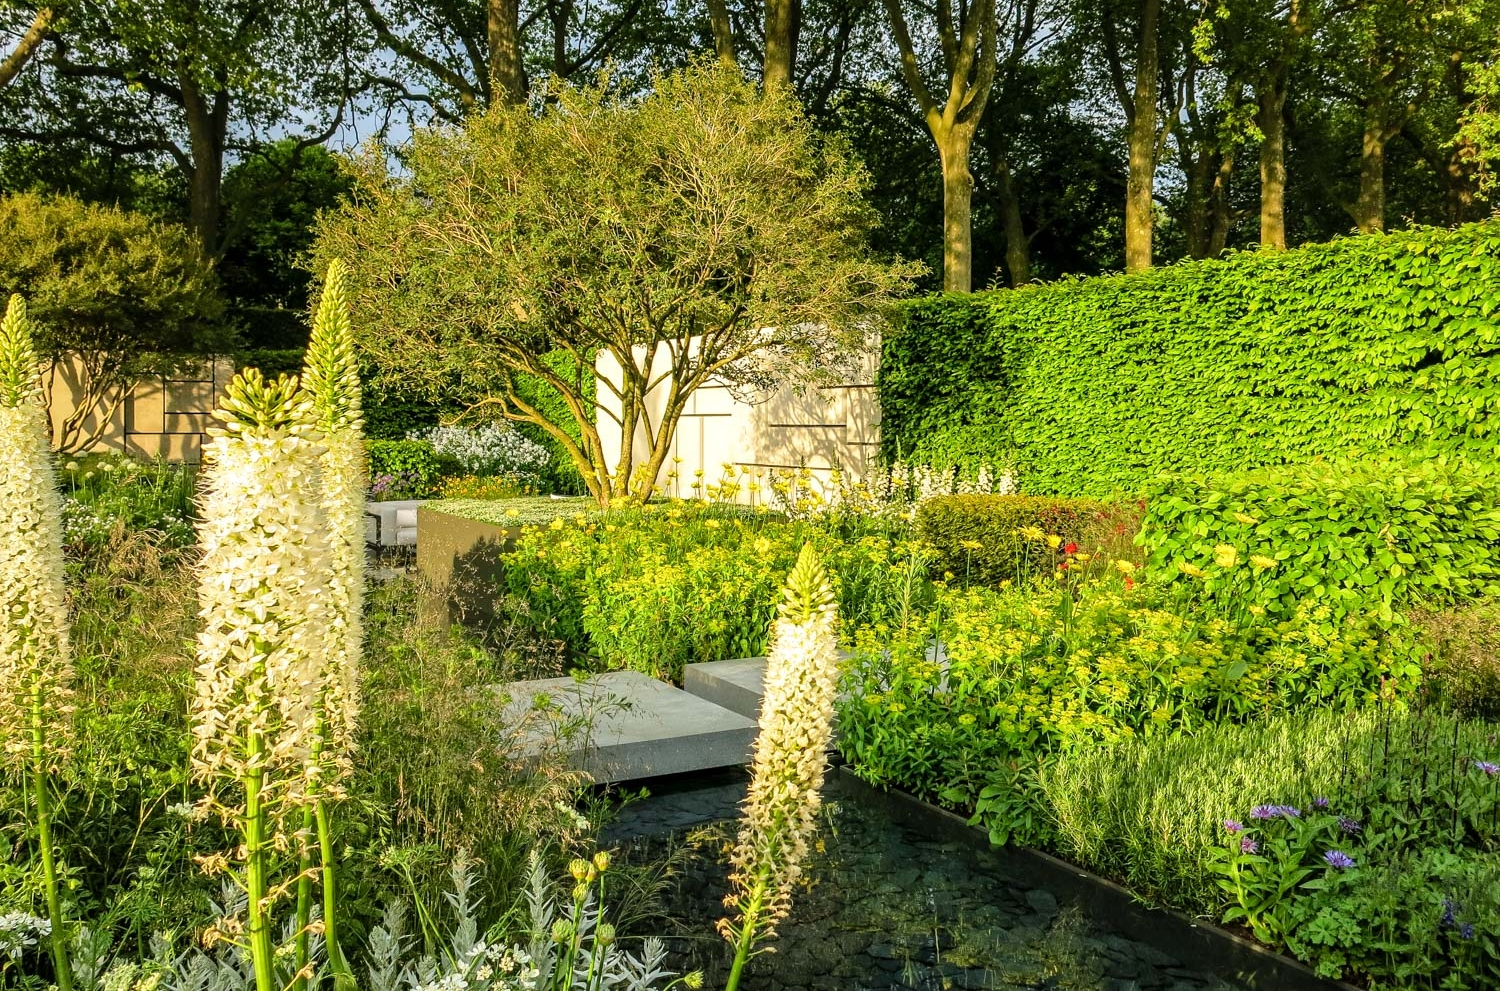 RHS Chelsea Show Garden.... Inspiration for my gardening projects comes from learning from the best designers in the country.